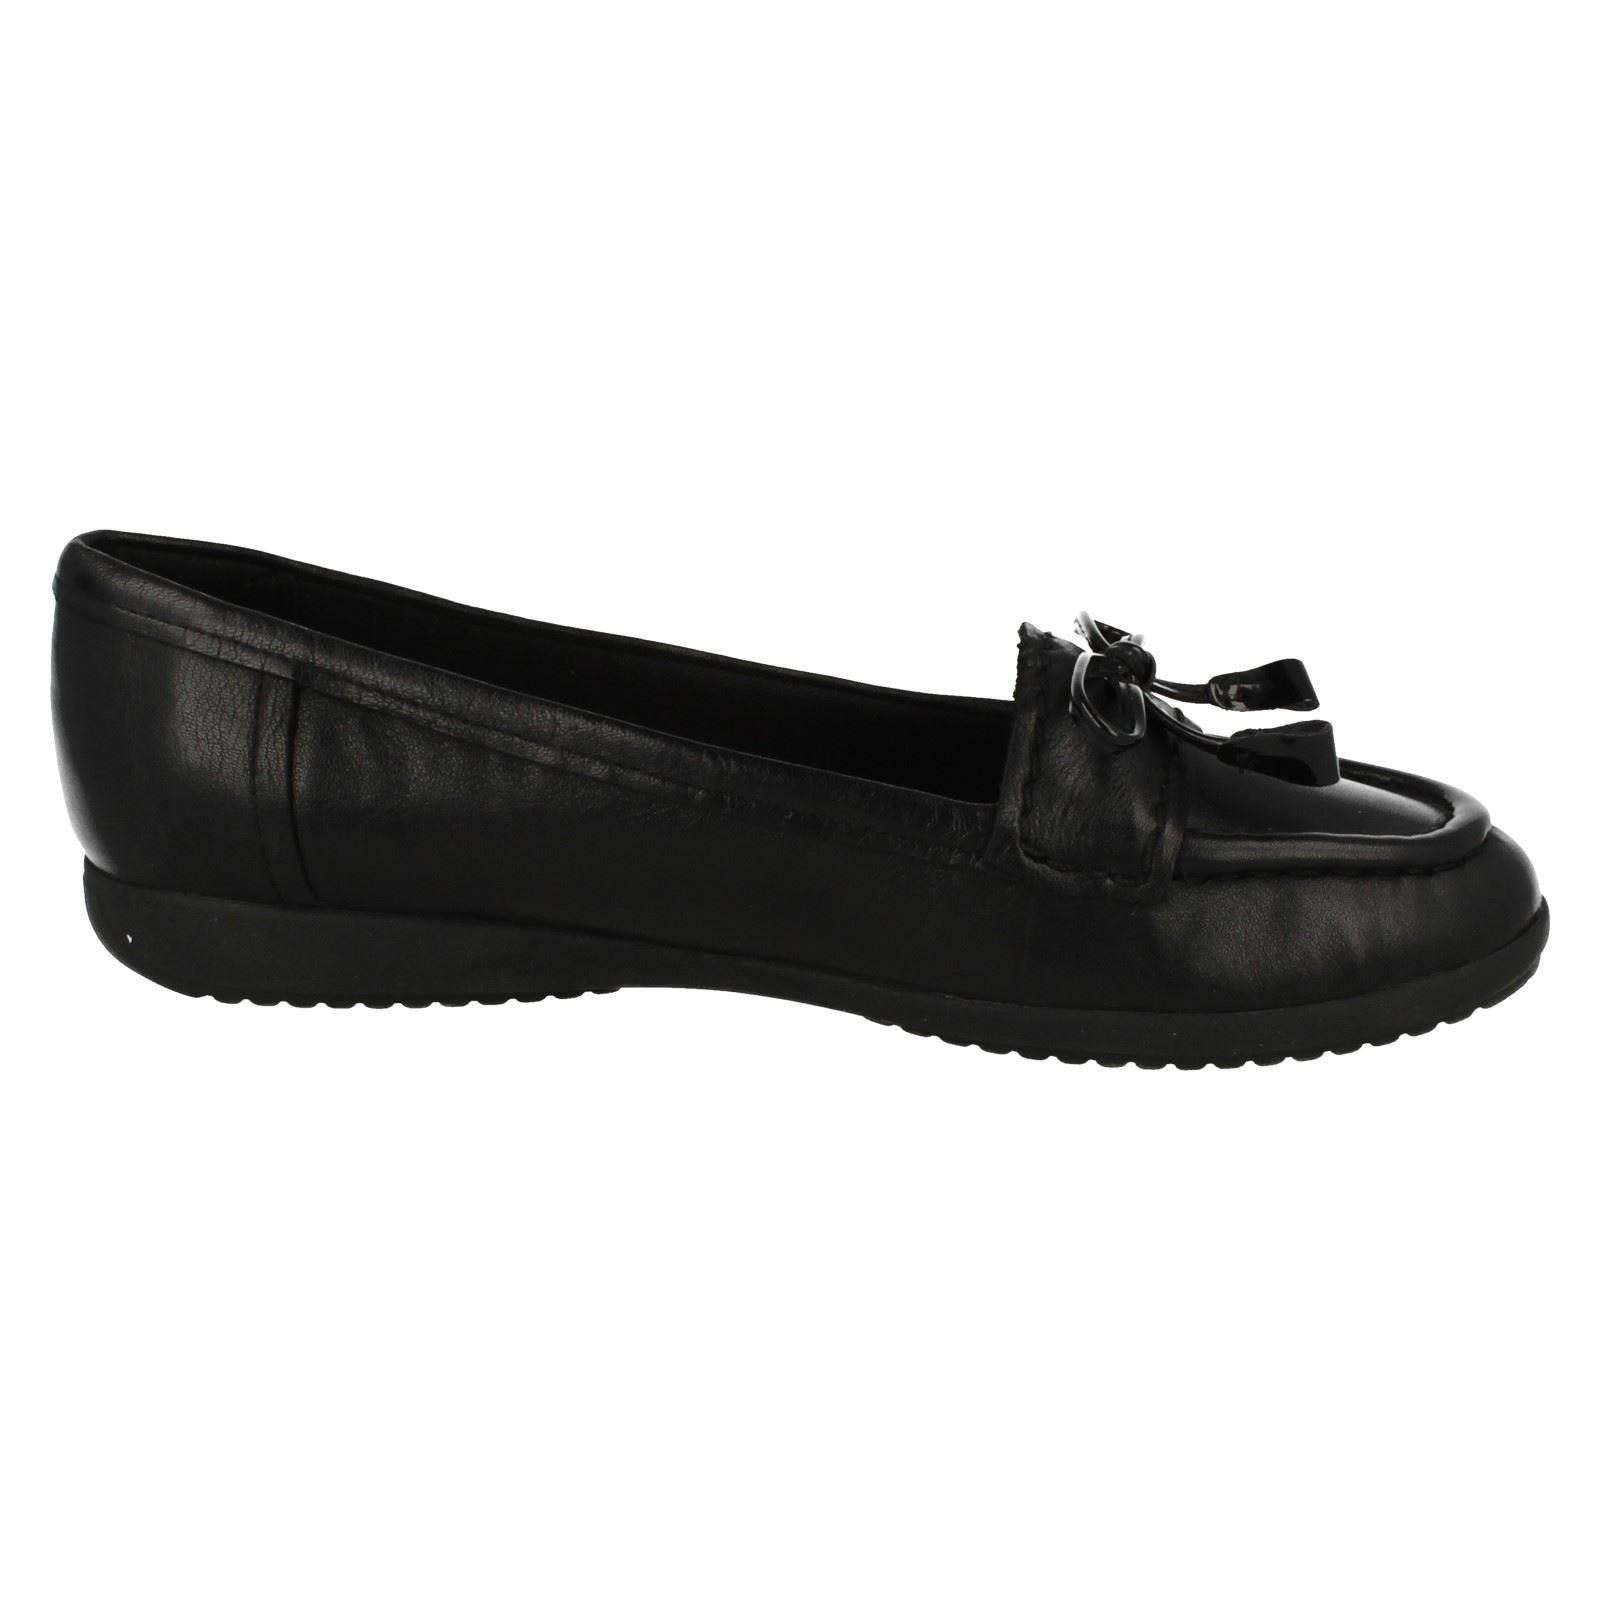 'Ladies Clarks' Moccasin Style Flat Shoes - Feya Bloom